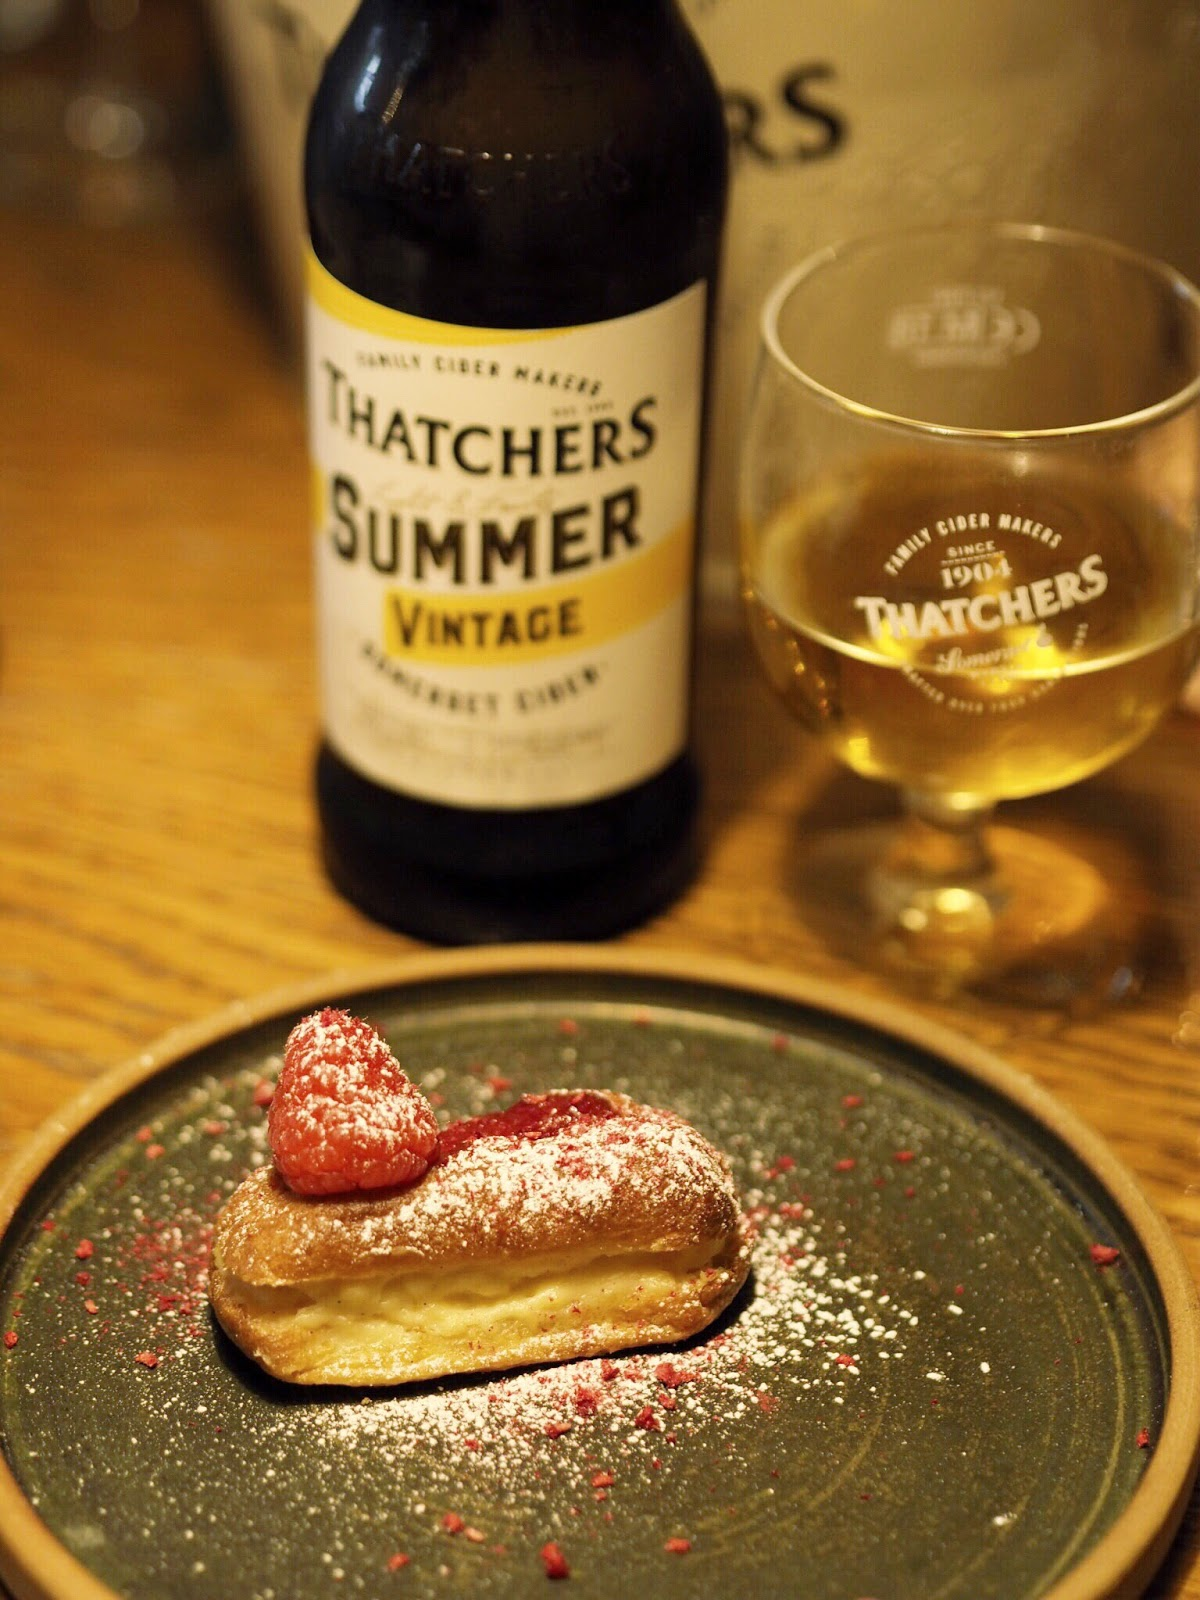 Thatchers Summer Vintage with Raspberry Eclair